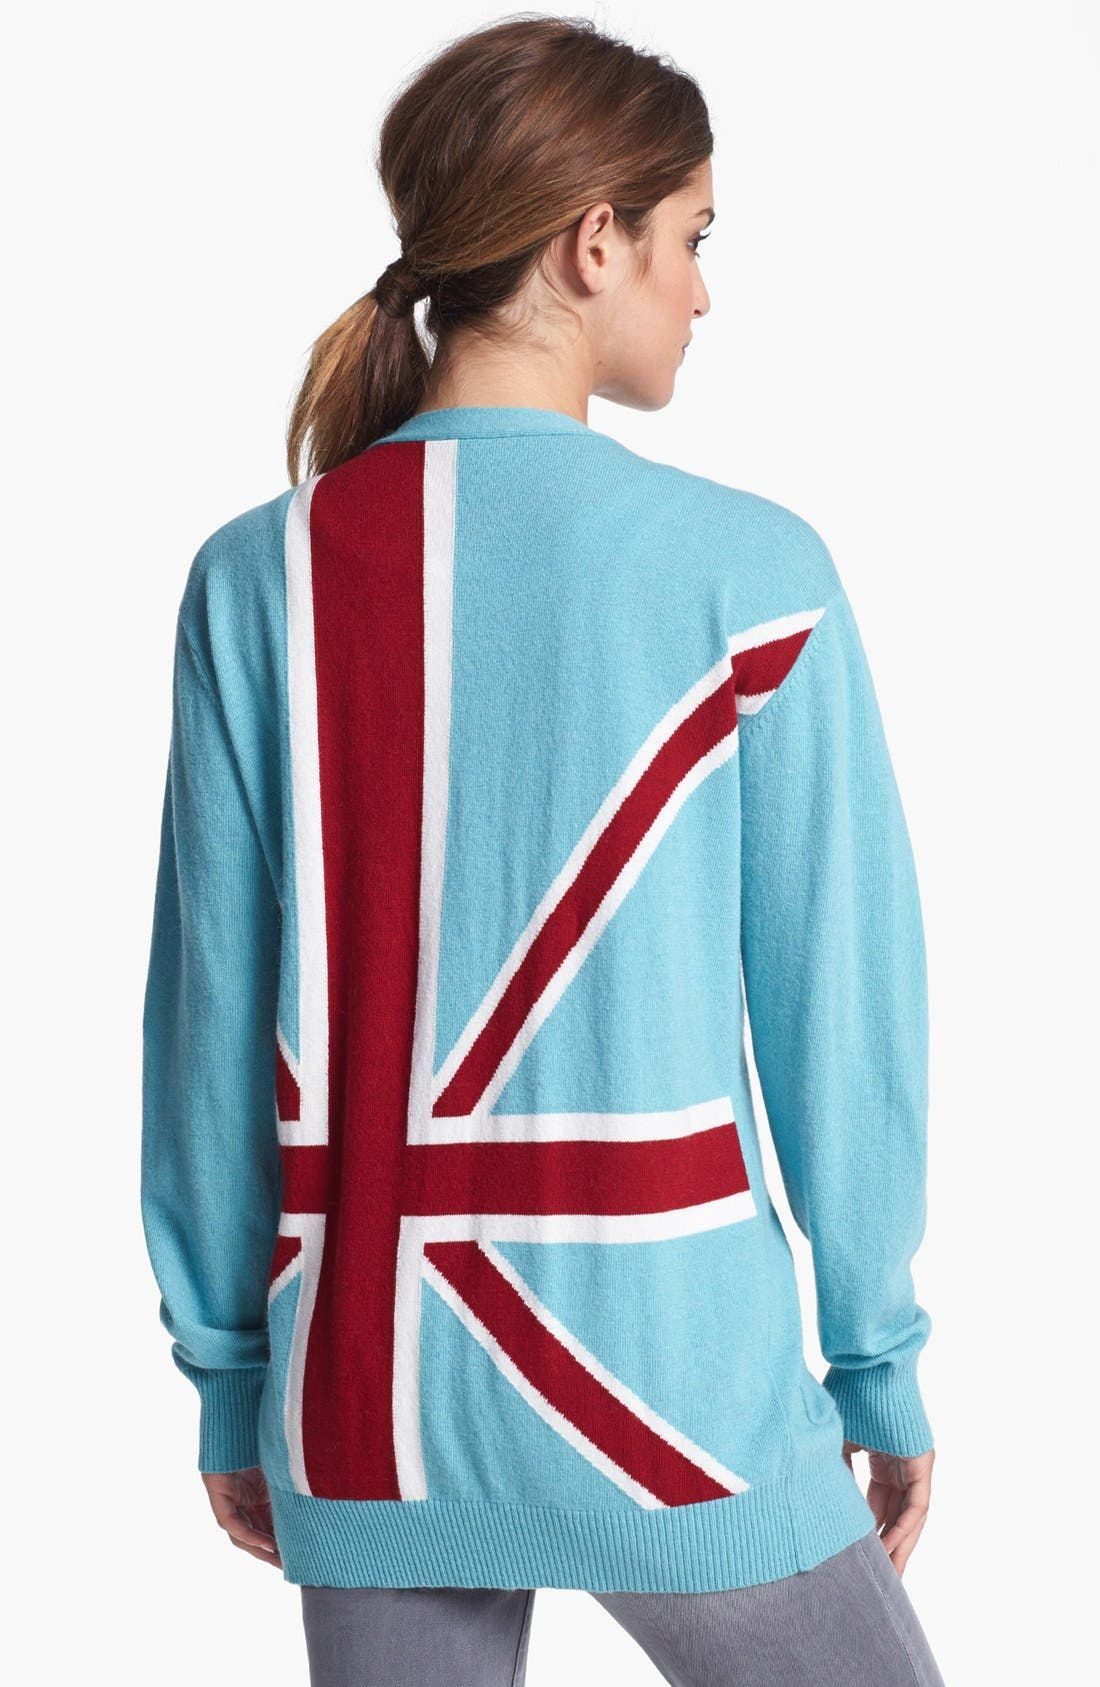 Alternate Image 1 Selected - Press 'British Intarsia' Snap Front Cardigan